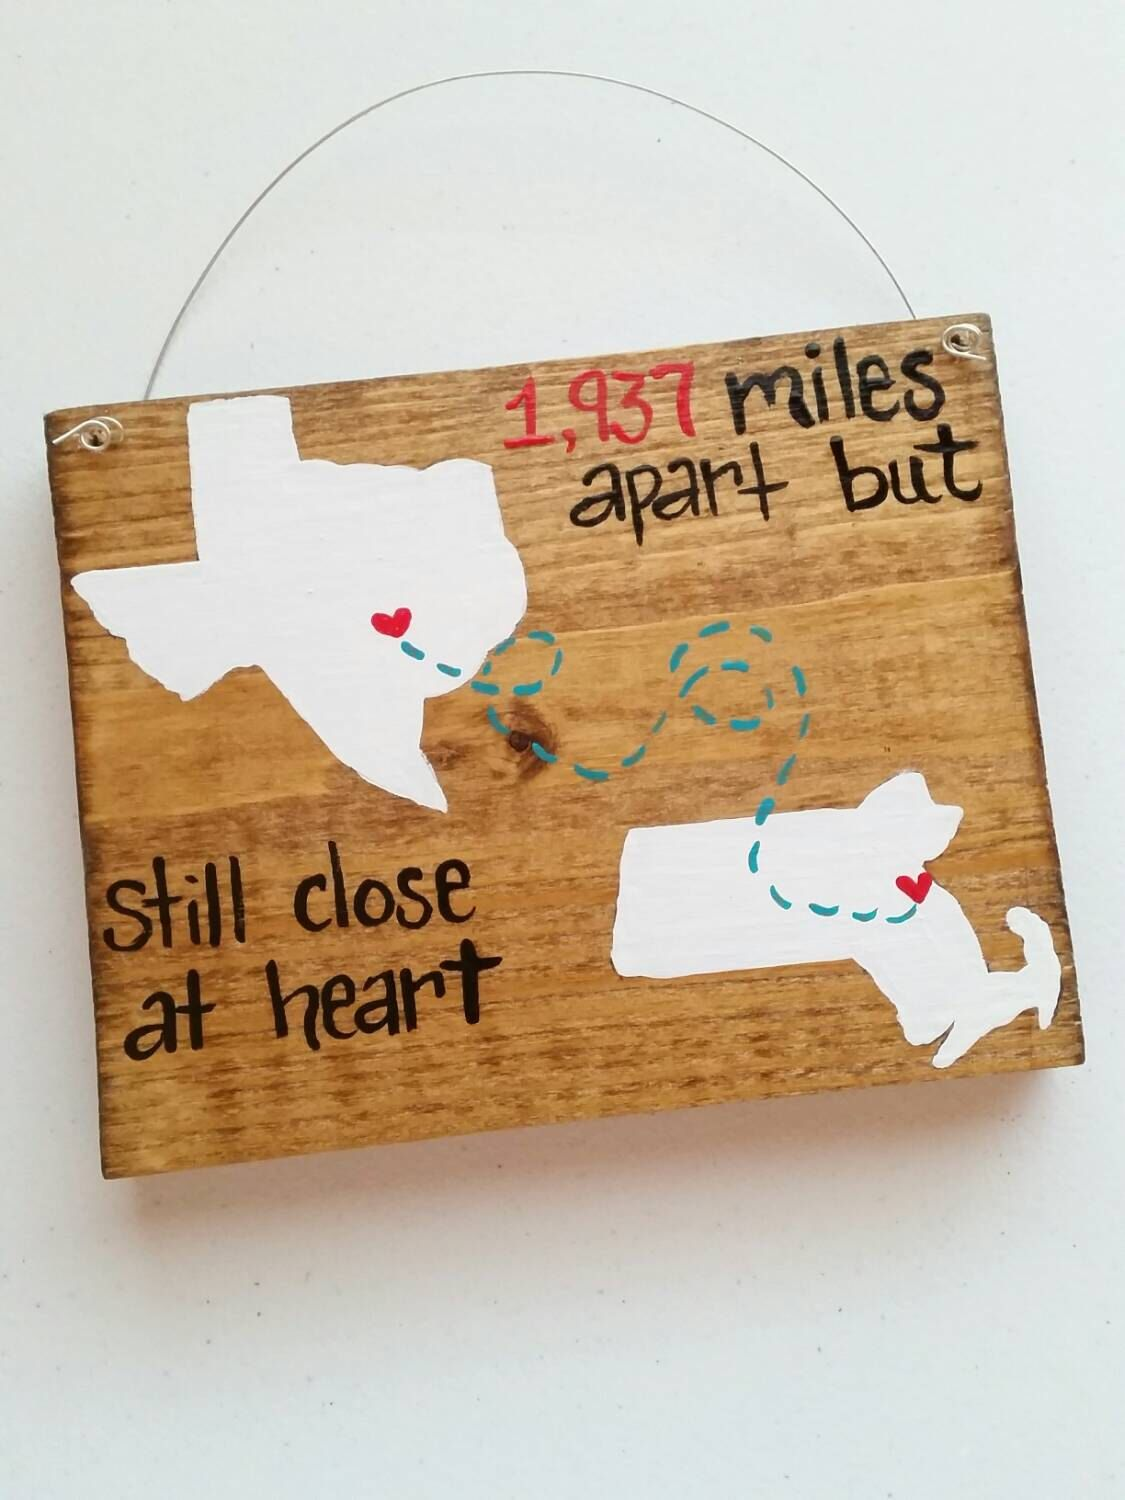 Best Friends Long Distance Family Wood Sign 5x7 State Gift